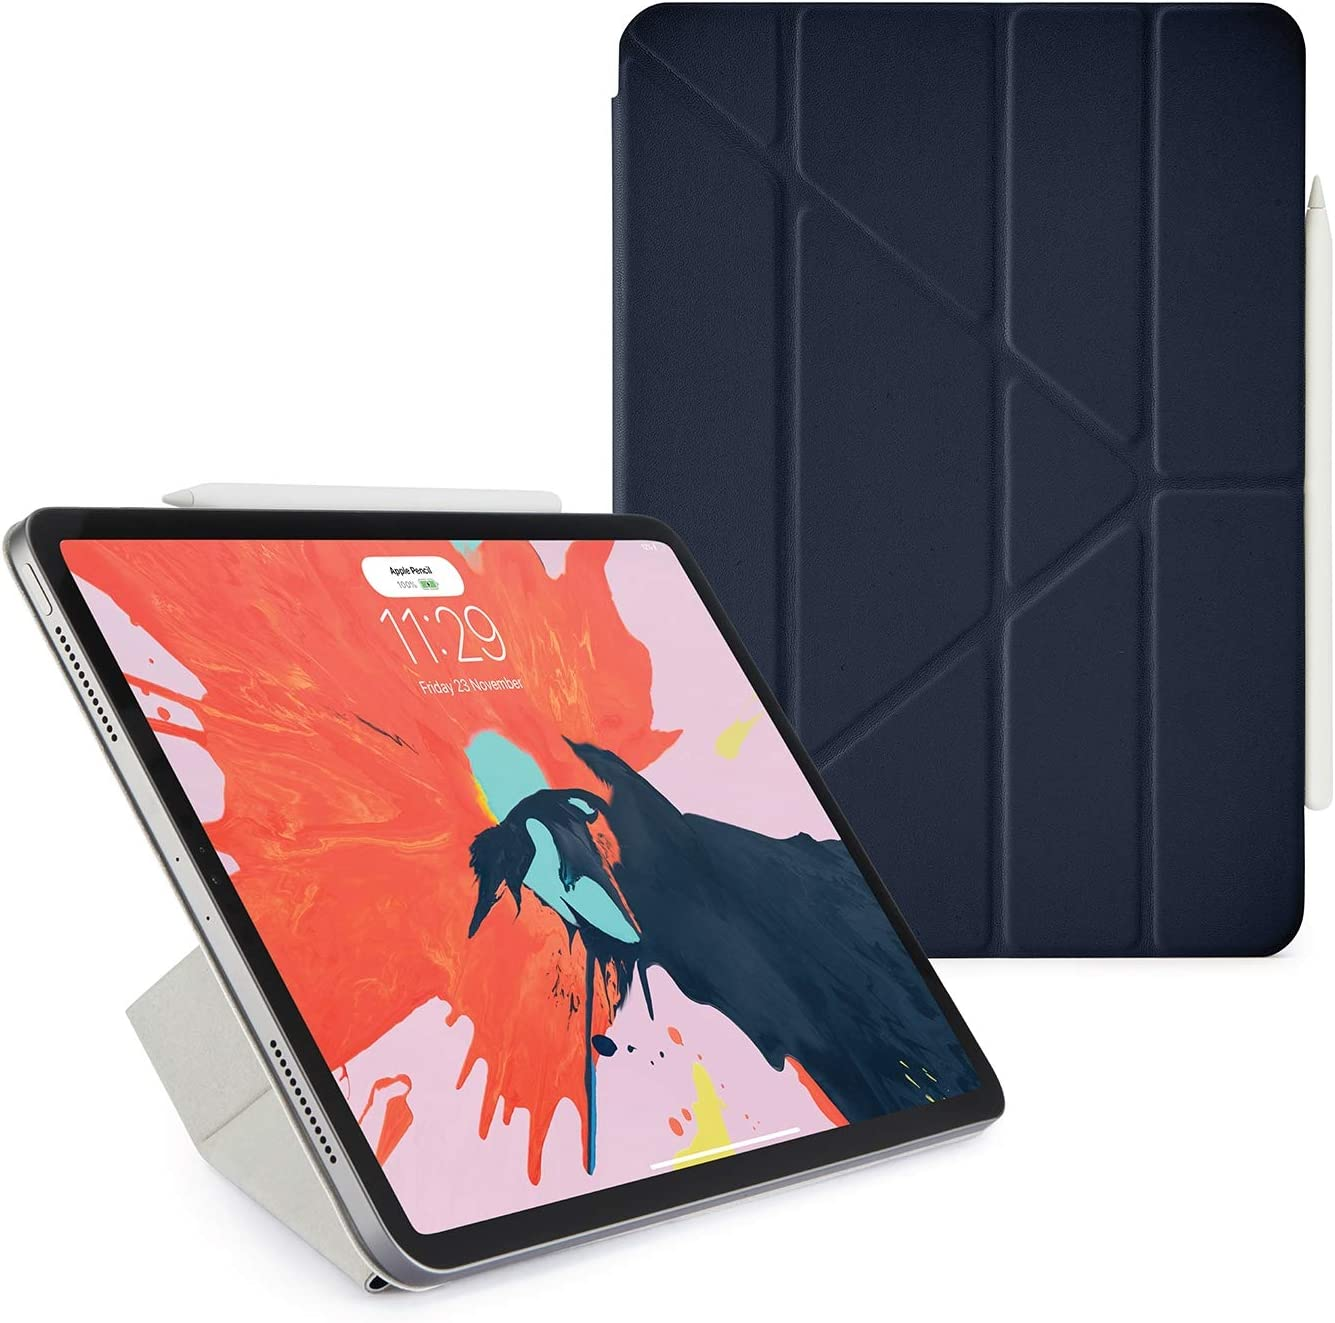 PIPETTO 11 inch iPad Pro (2018) Origami Smart Folio Case | Apple Pencil 2 Sync and Charge | 5 in 1 Folding Position with Auto Sleep/Wake Function - Navy